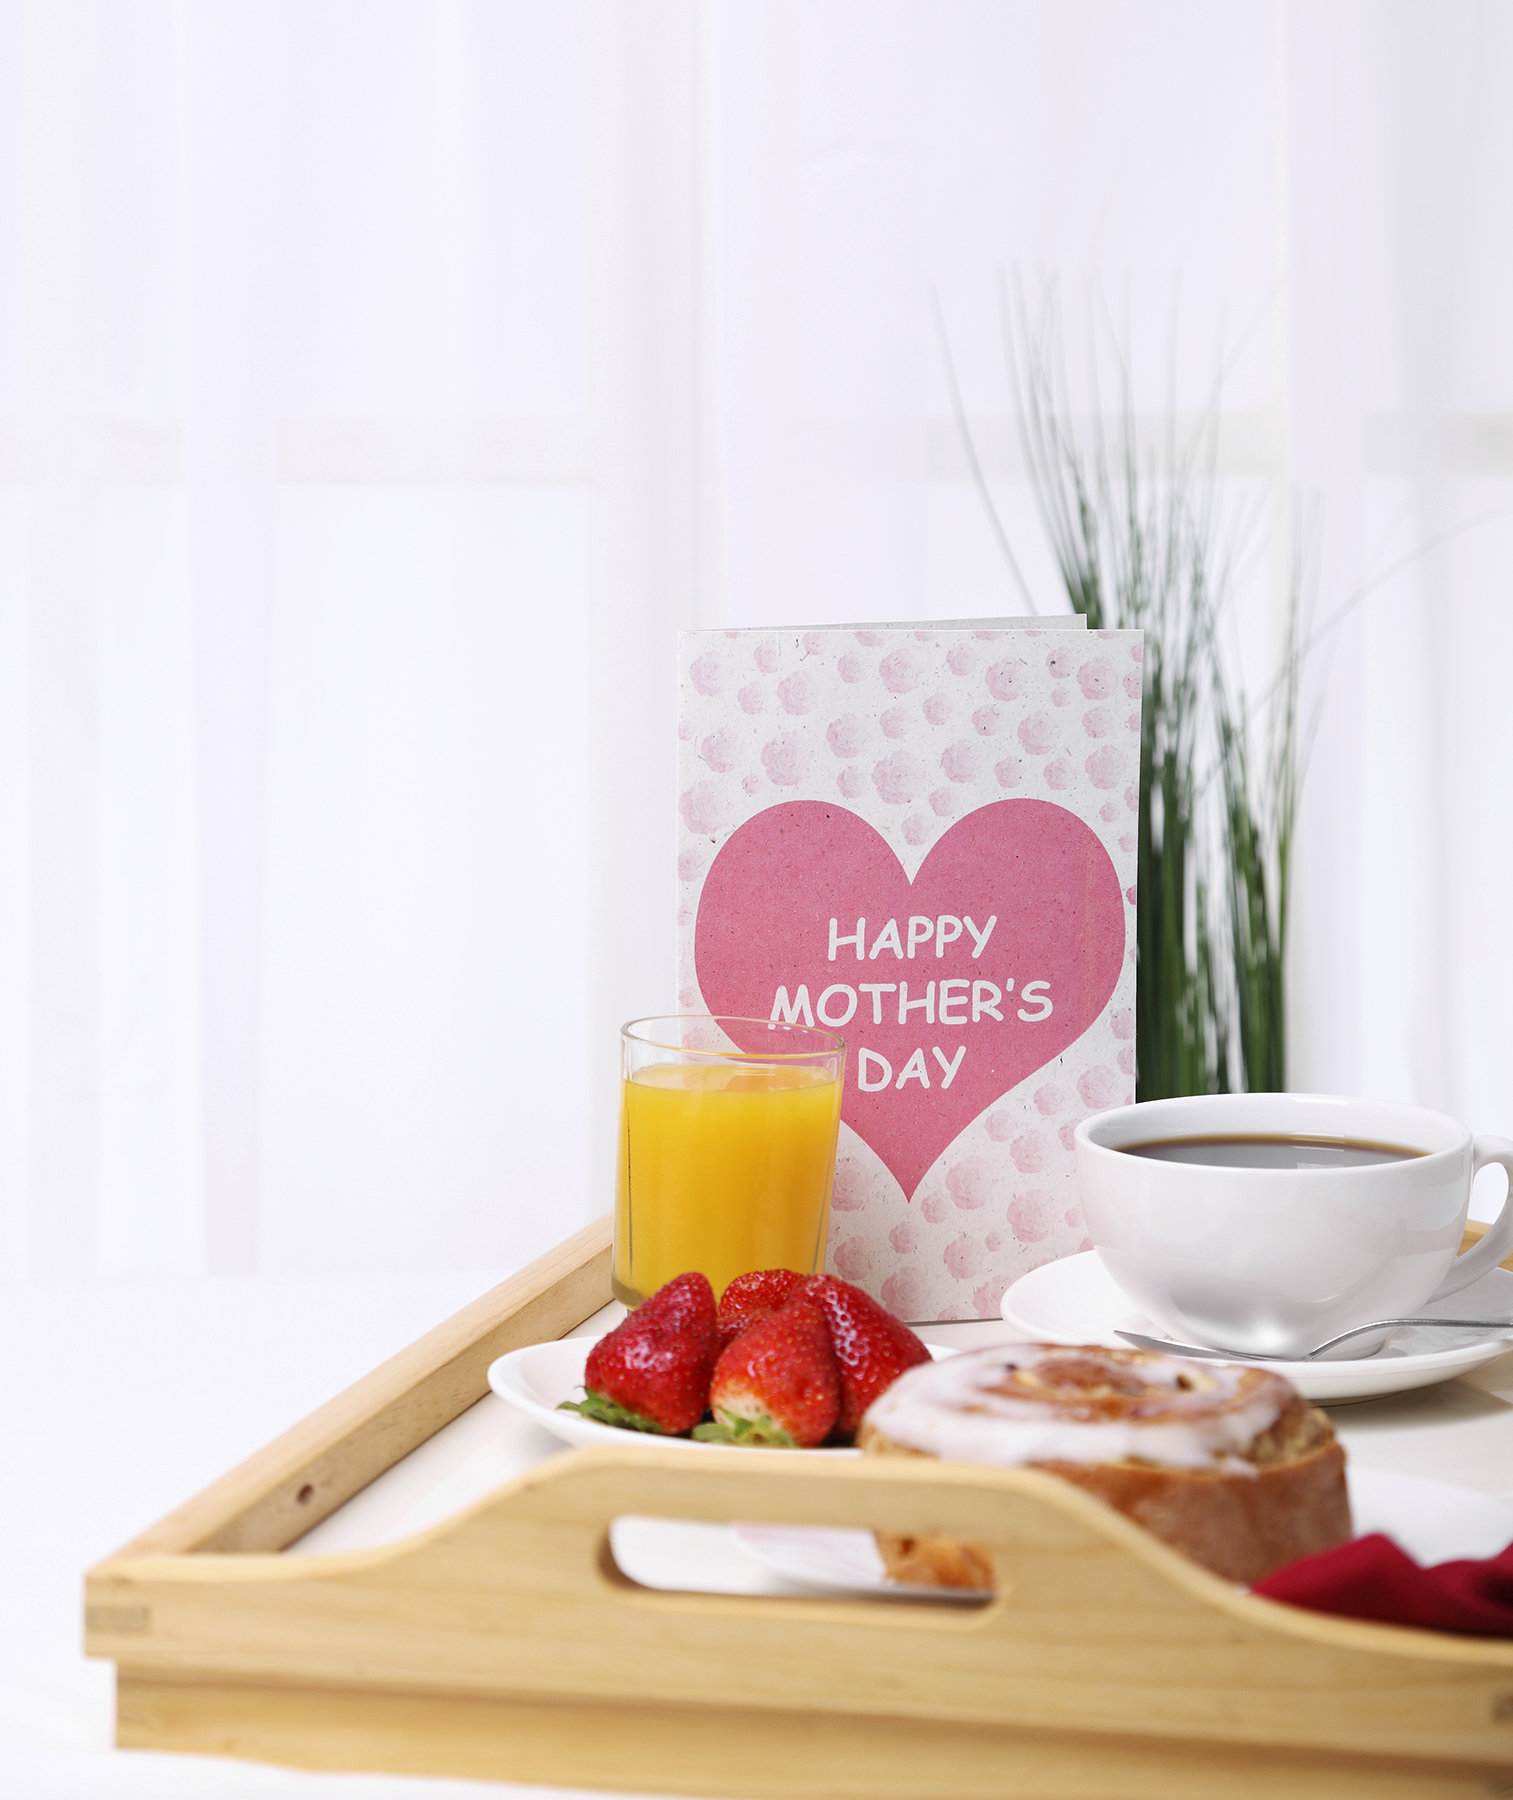 mothers-day-breakfast-bed-tray